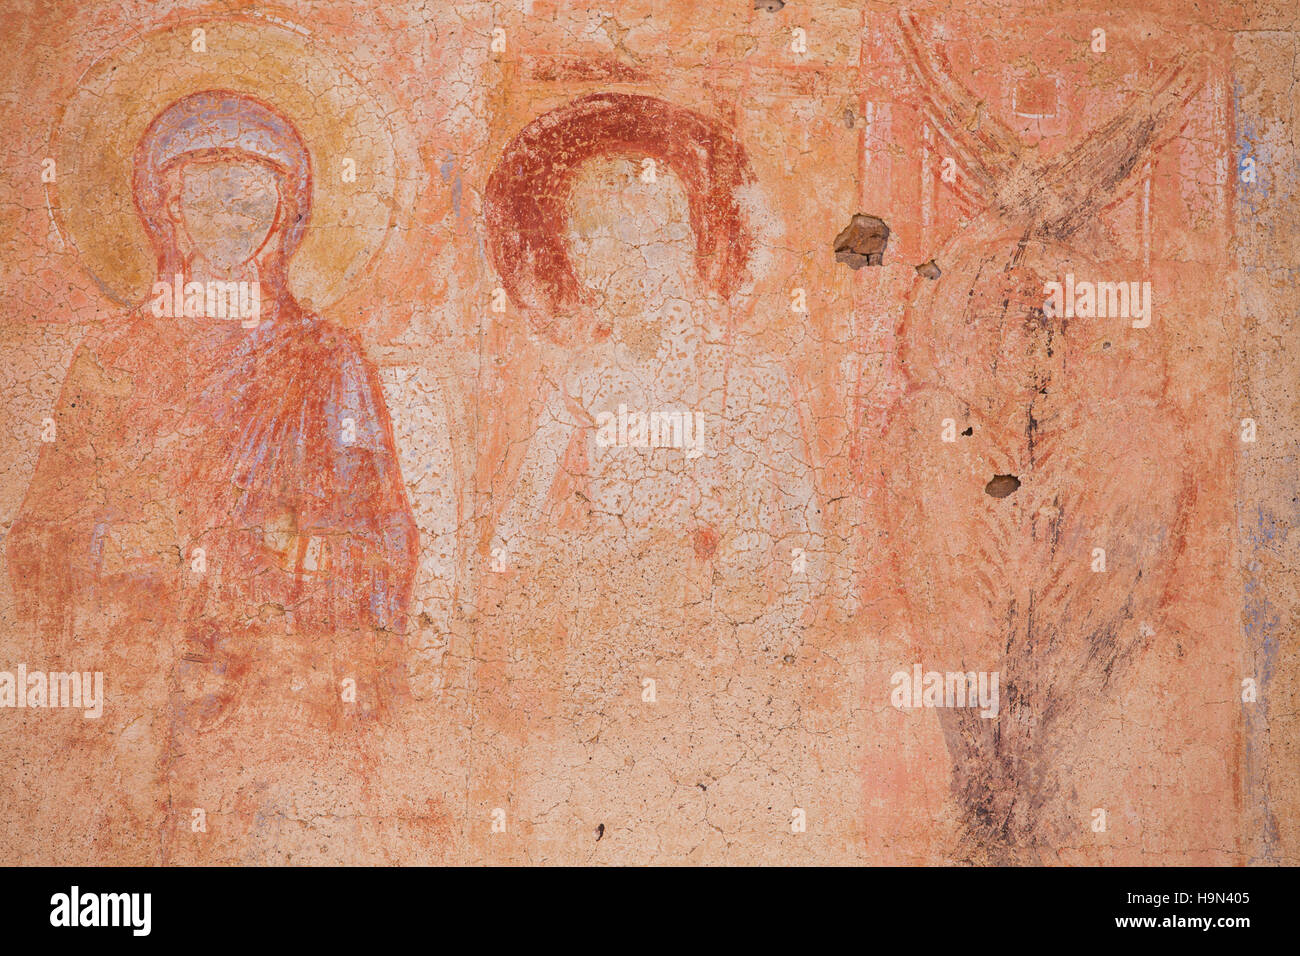 Color detail of some paintings of saints in an abandoned church. Stock Photo